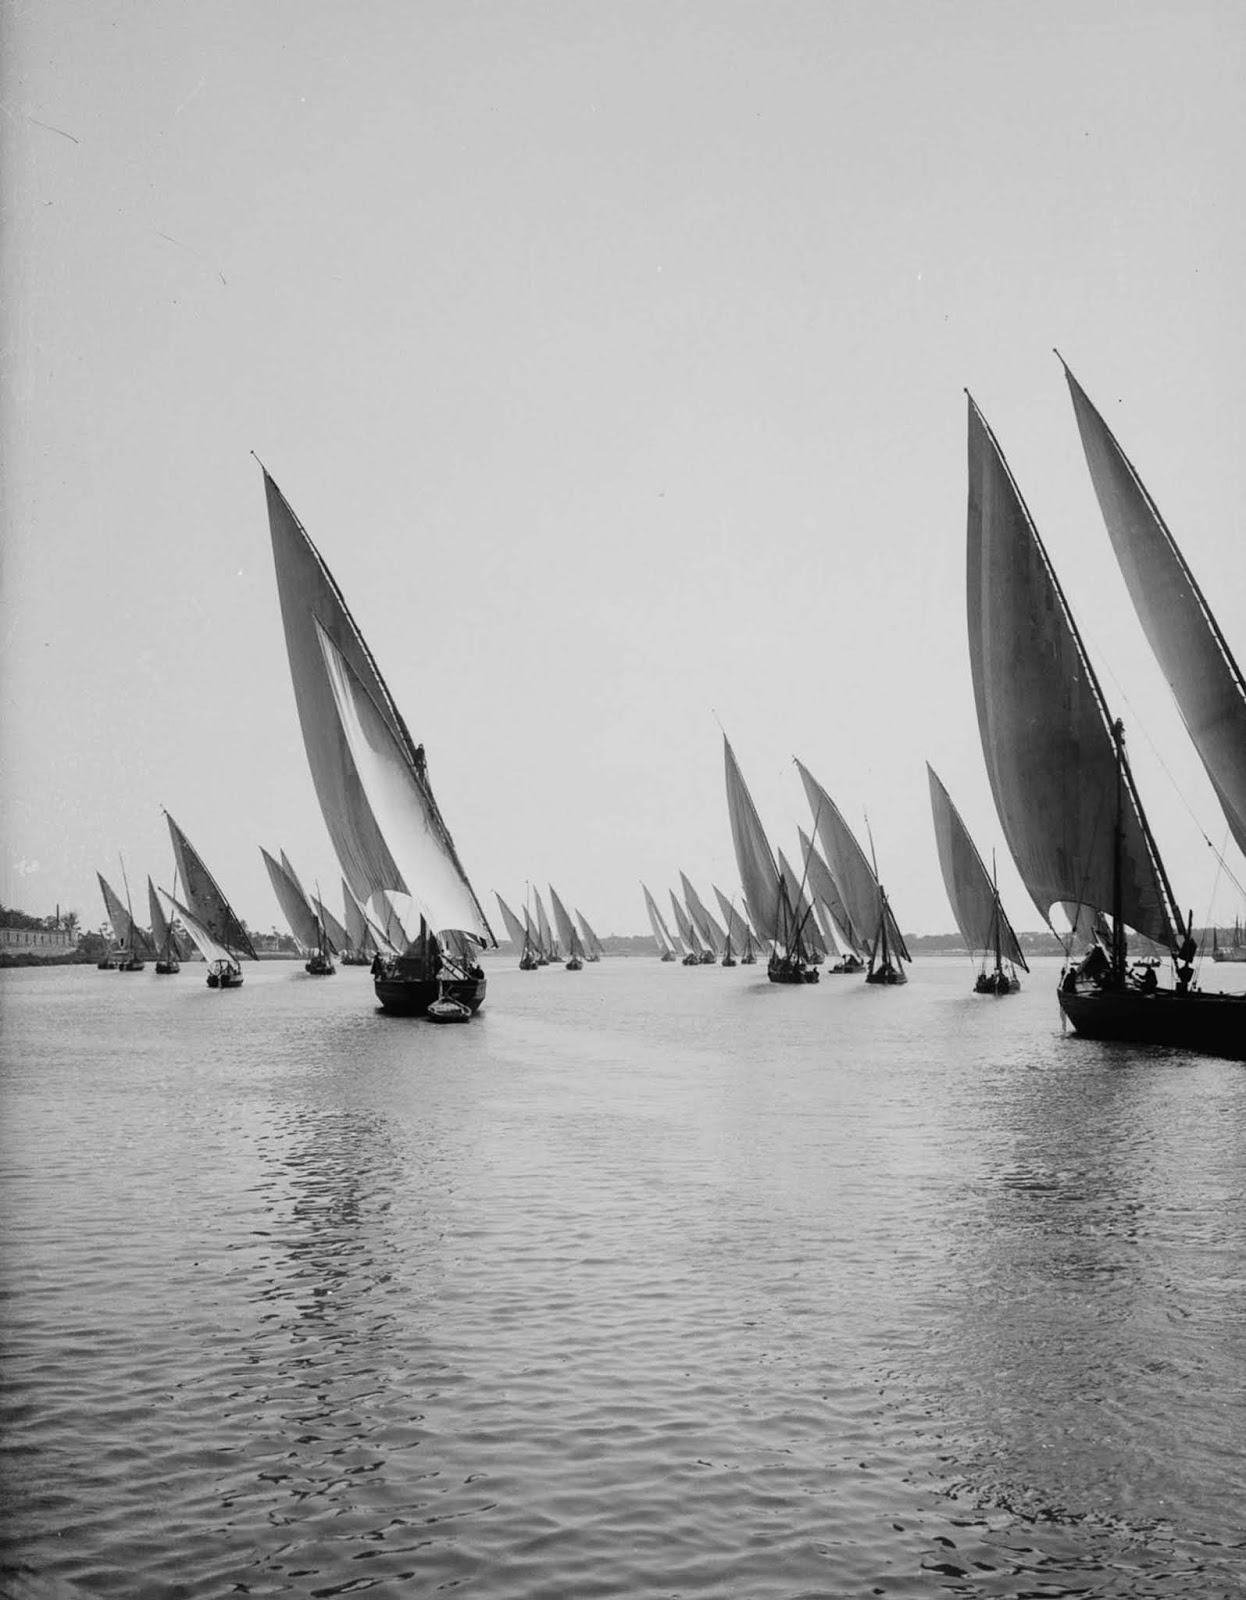 Boats on the Nile. 1900.